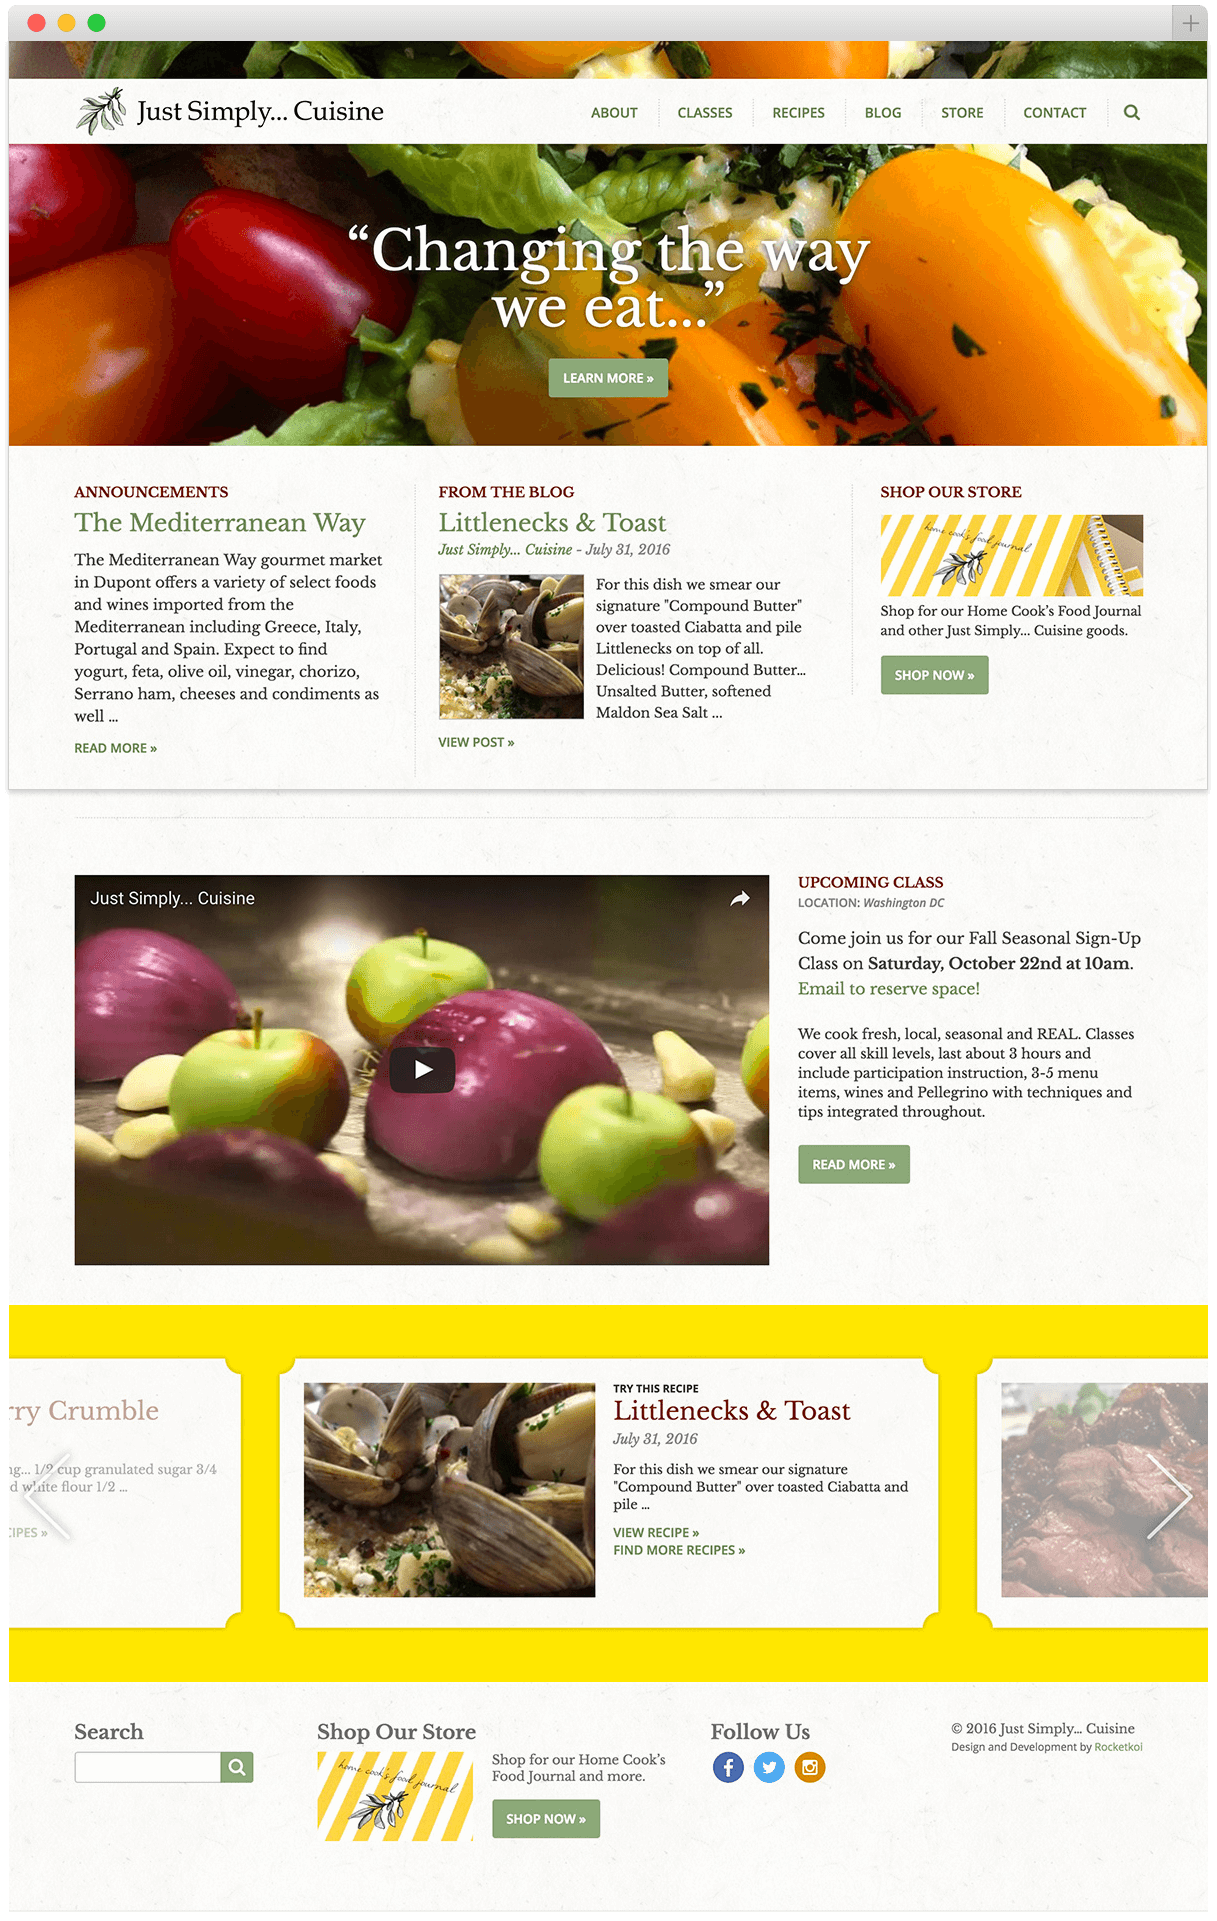 Just Simply... Cuisine homepage